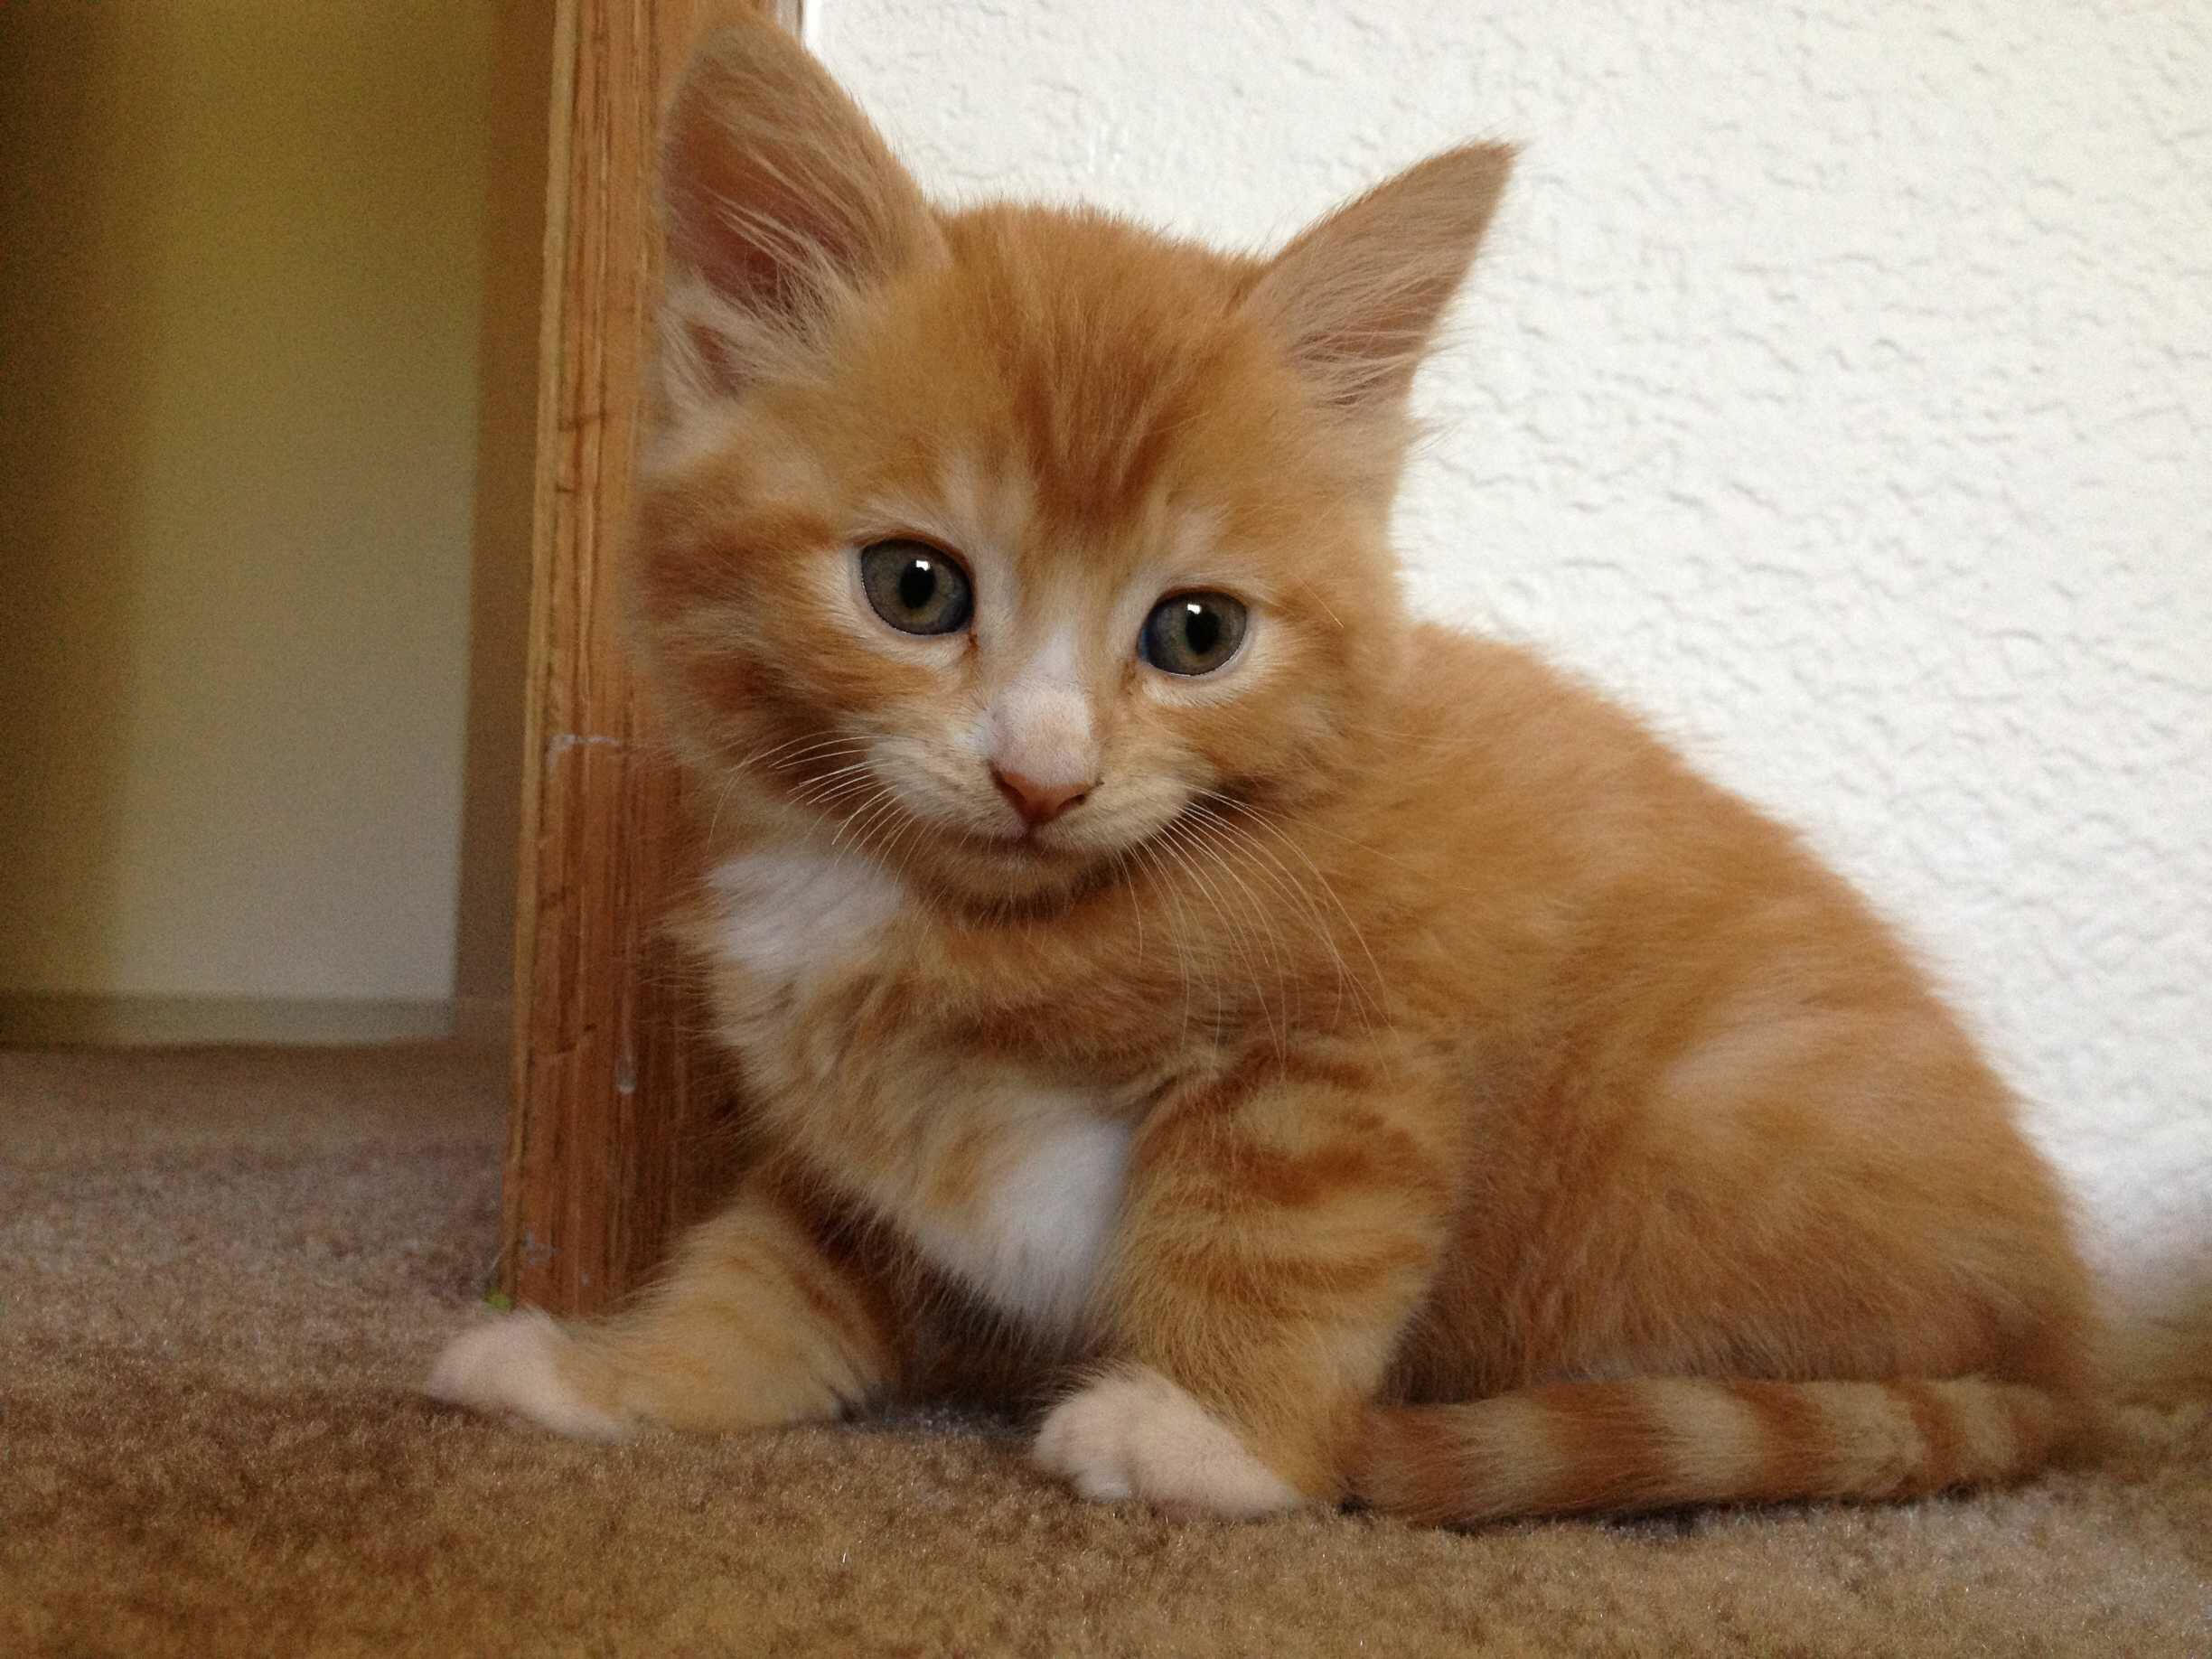 I Wish They Stayed This Size Forever Kittens Cutest Funny Animals Kittens